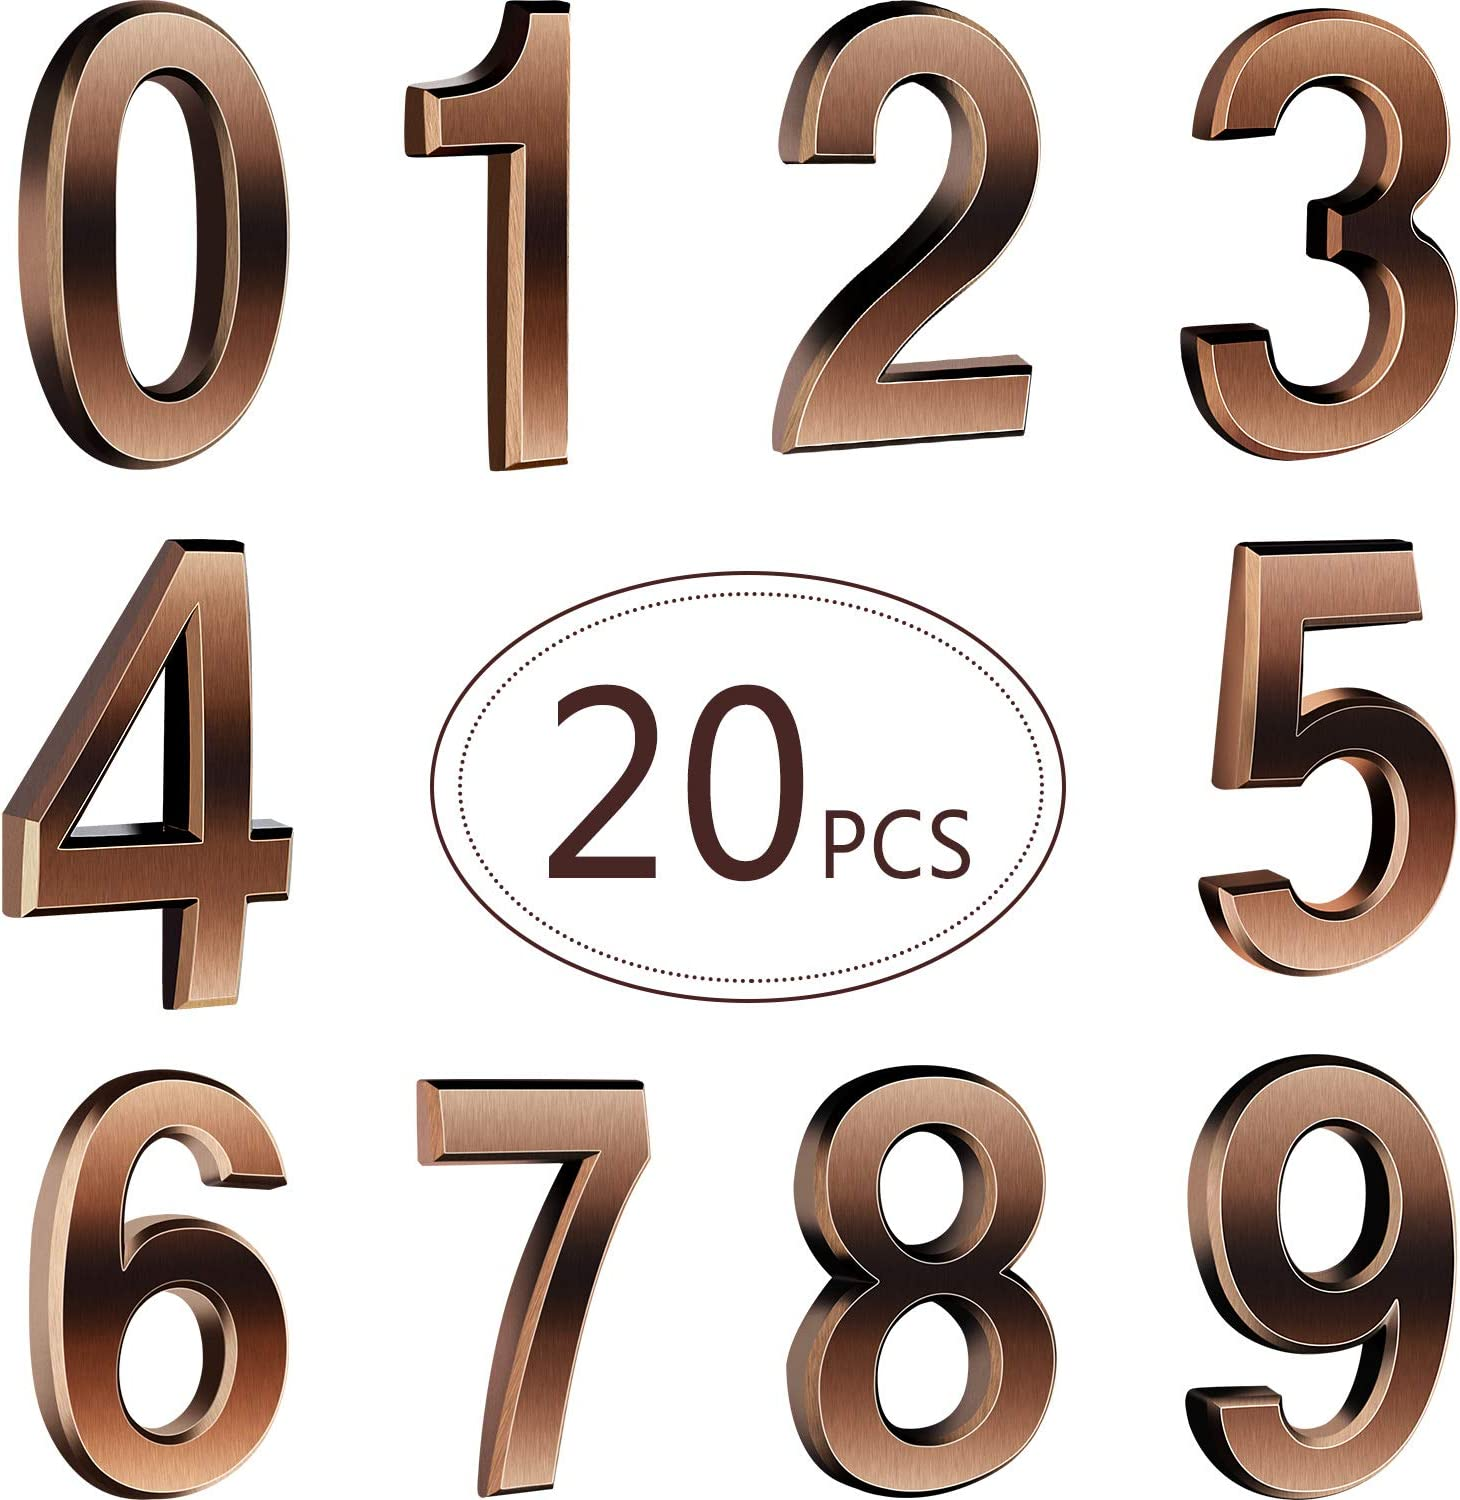 20 Pieces 2.75inch Self-Adhesive Door House Numbers Mailbox Numbers Street Address Numbers for Mailbox Signs, 0 to 9 (2.76 inch, Bronze)